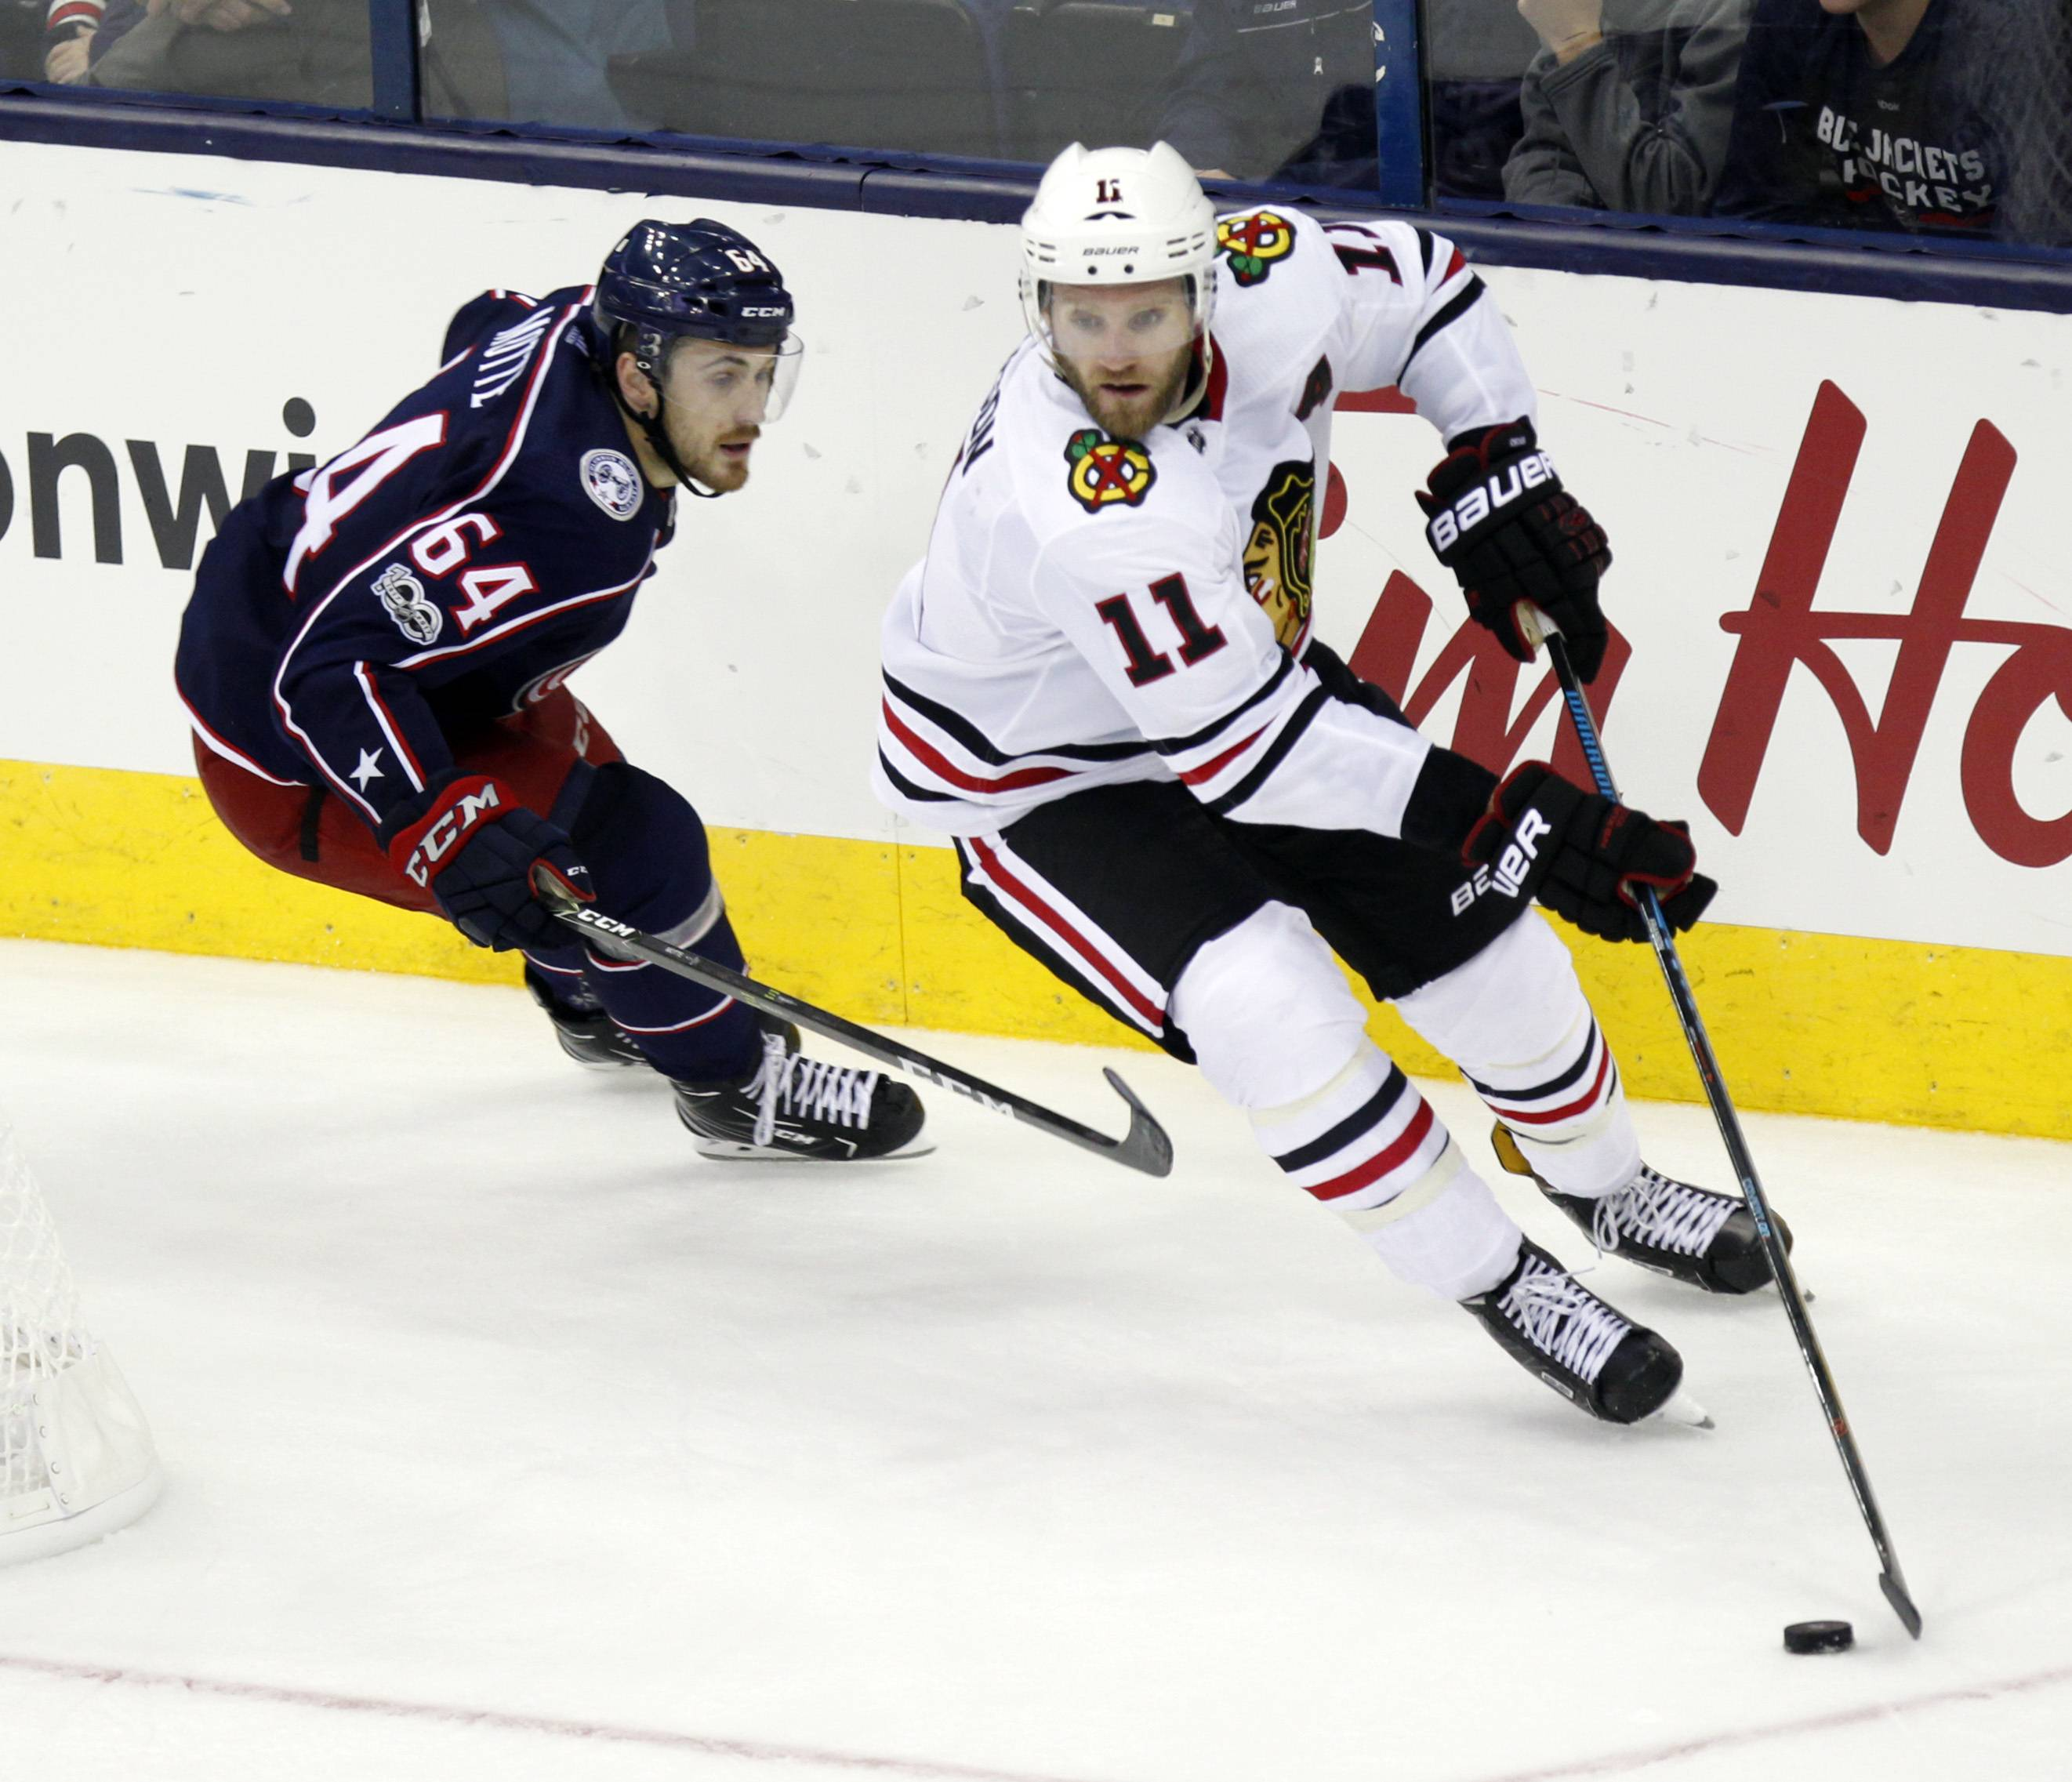 Now with the Rockford Icehogs, former Blackhawks defenseman Cody Franson, right, says he's working on his speed and footwork to improve his chances of playing in the NHL again.